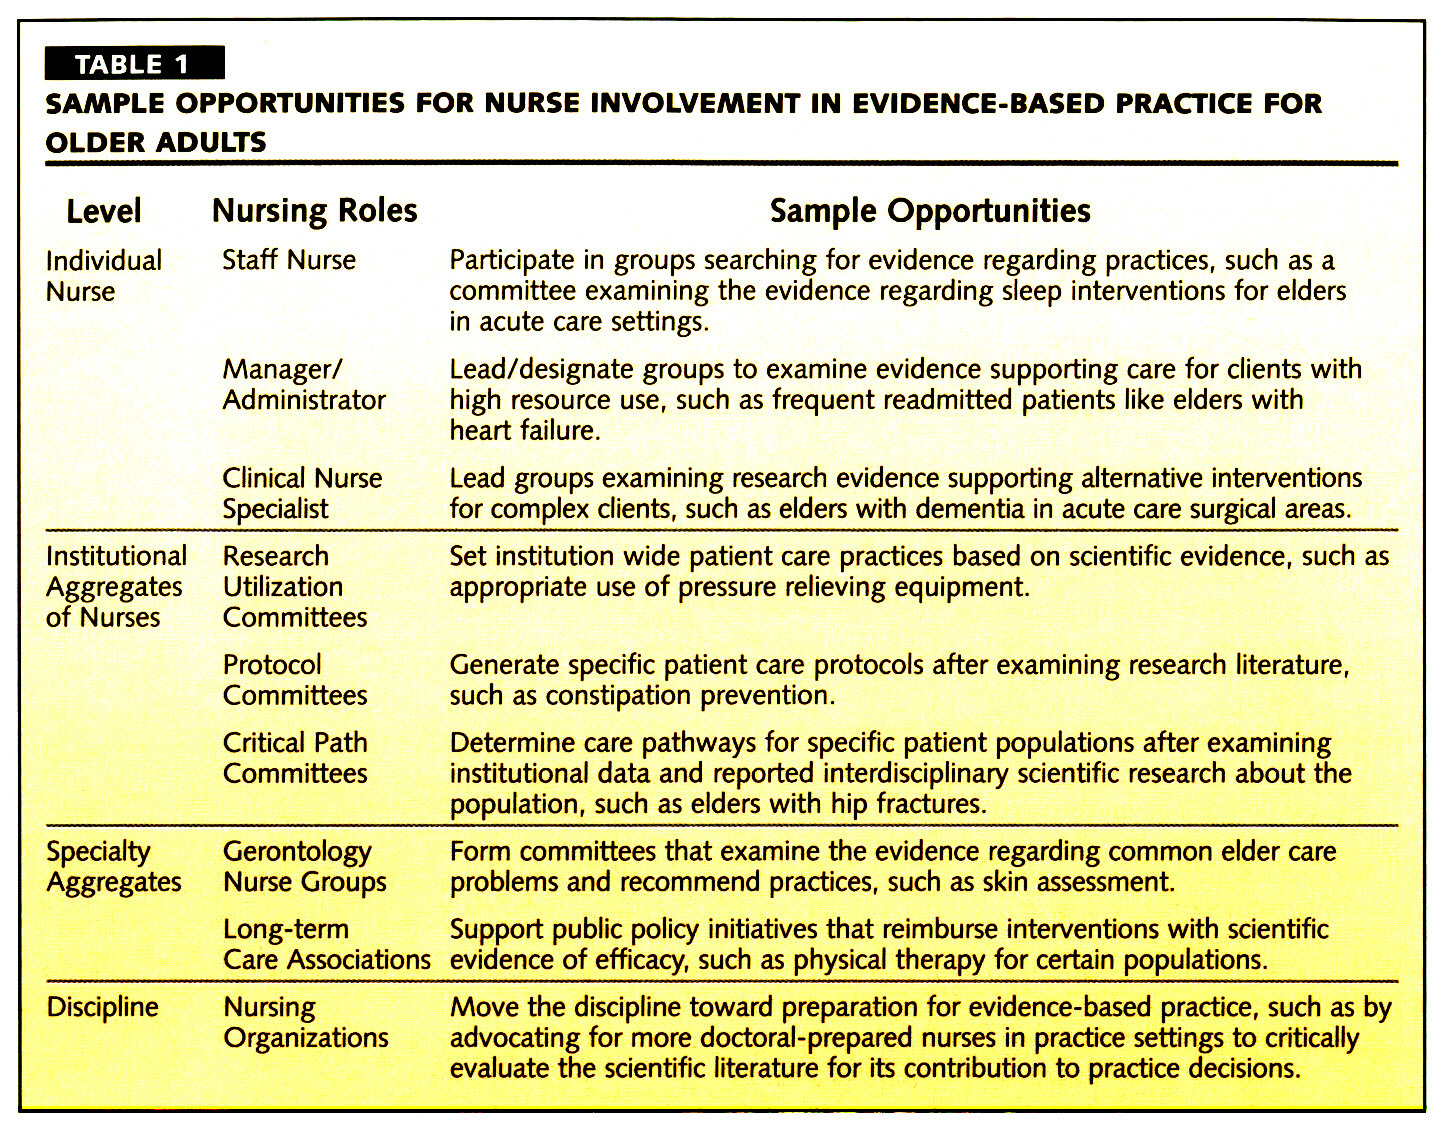 TABLE 1SAMPLE OPPORTUNITIES FOR NURSE INVOLVEMENT IN EVIDENCE-BASED PRACTICE FOR OLDER ADULTS